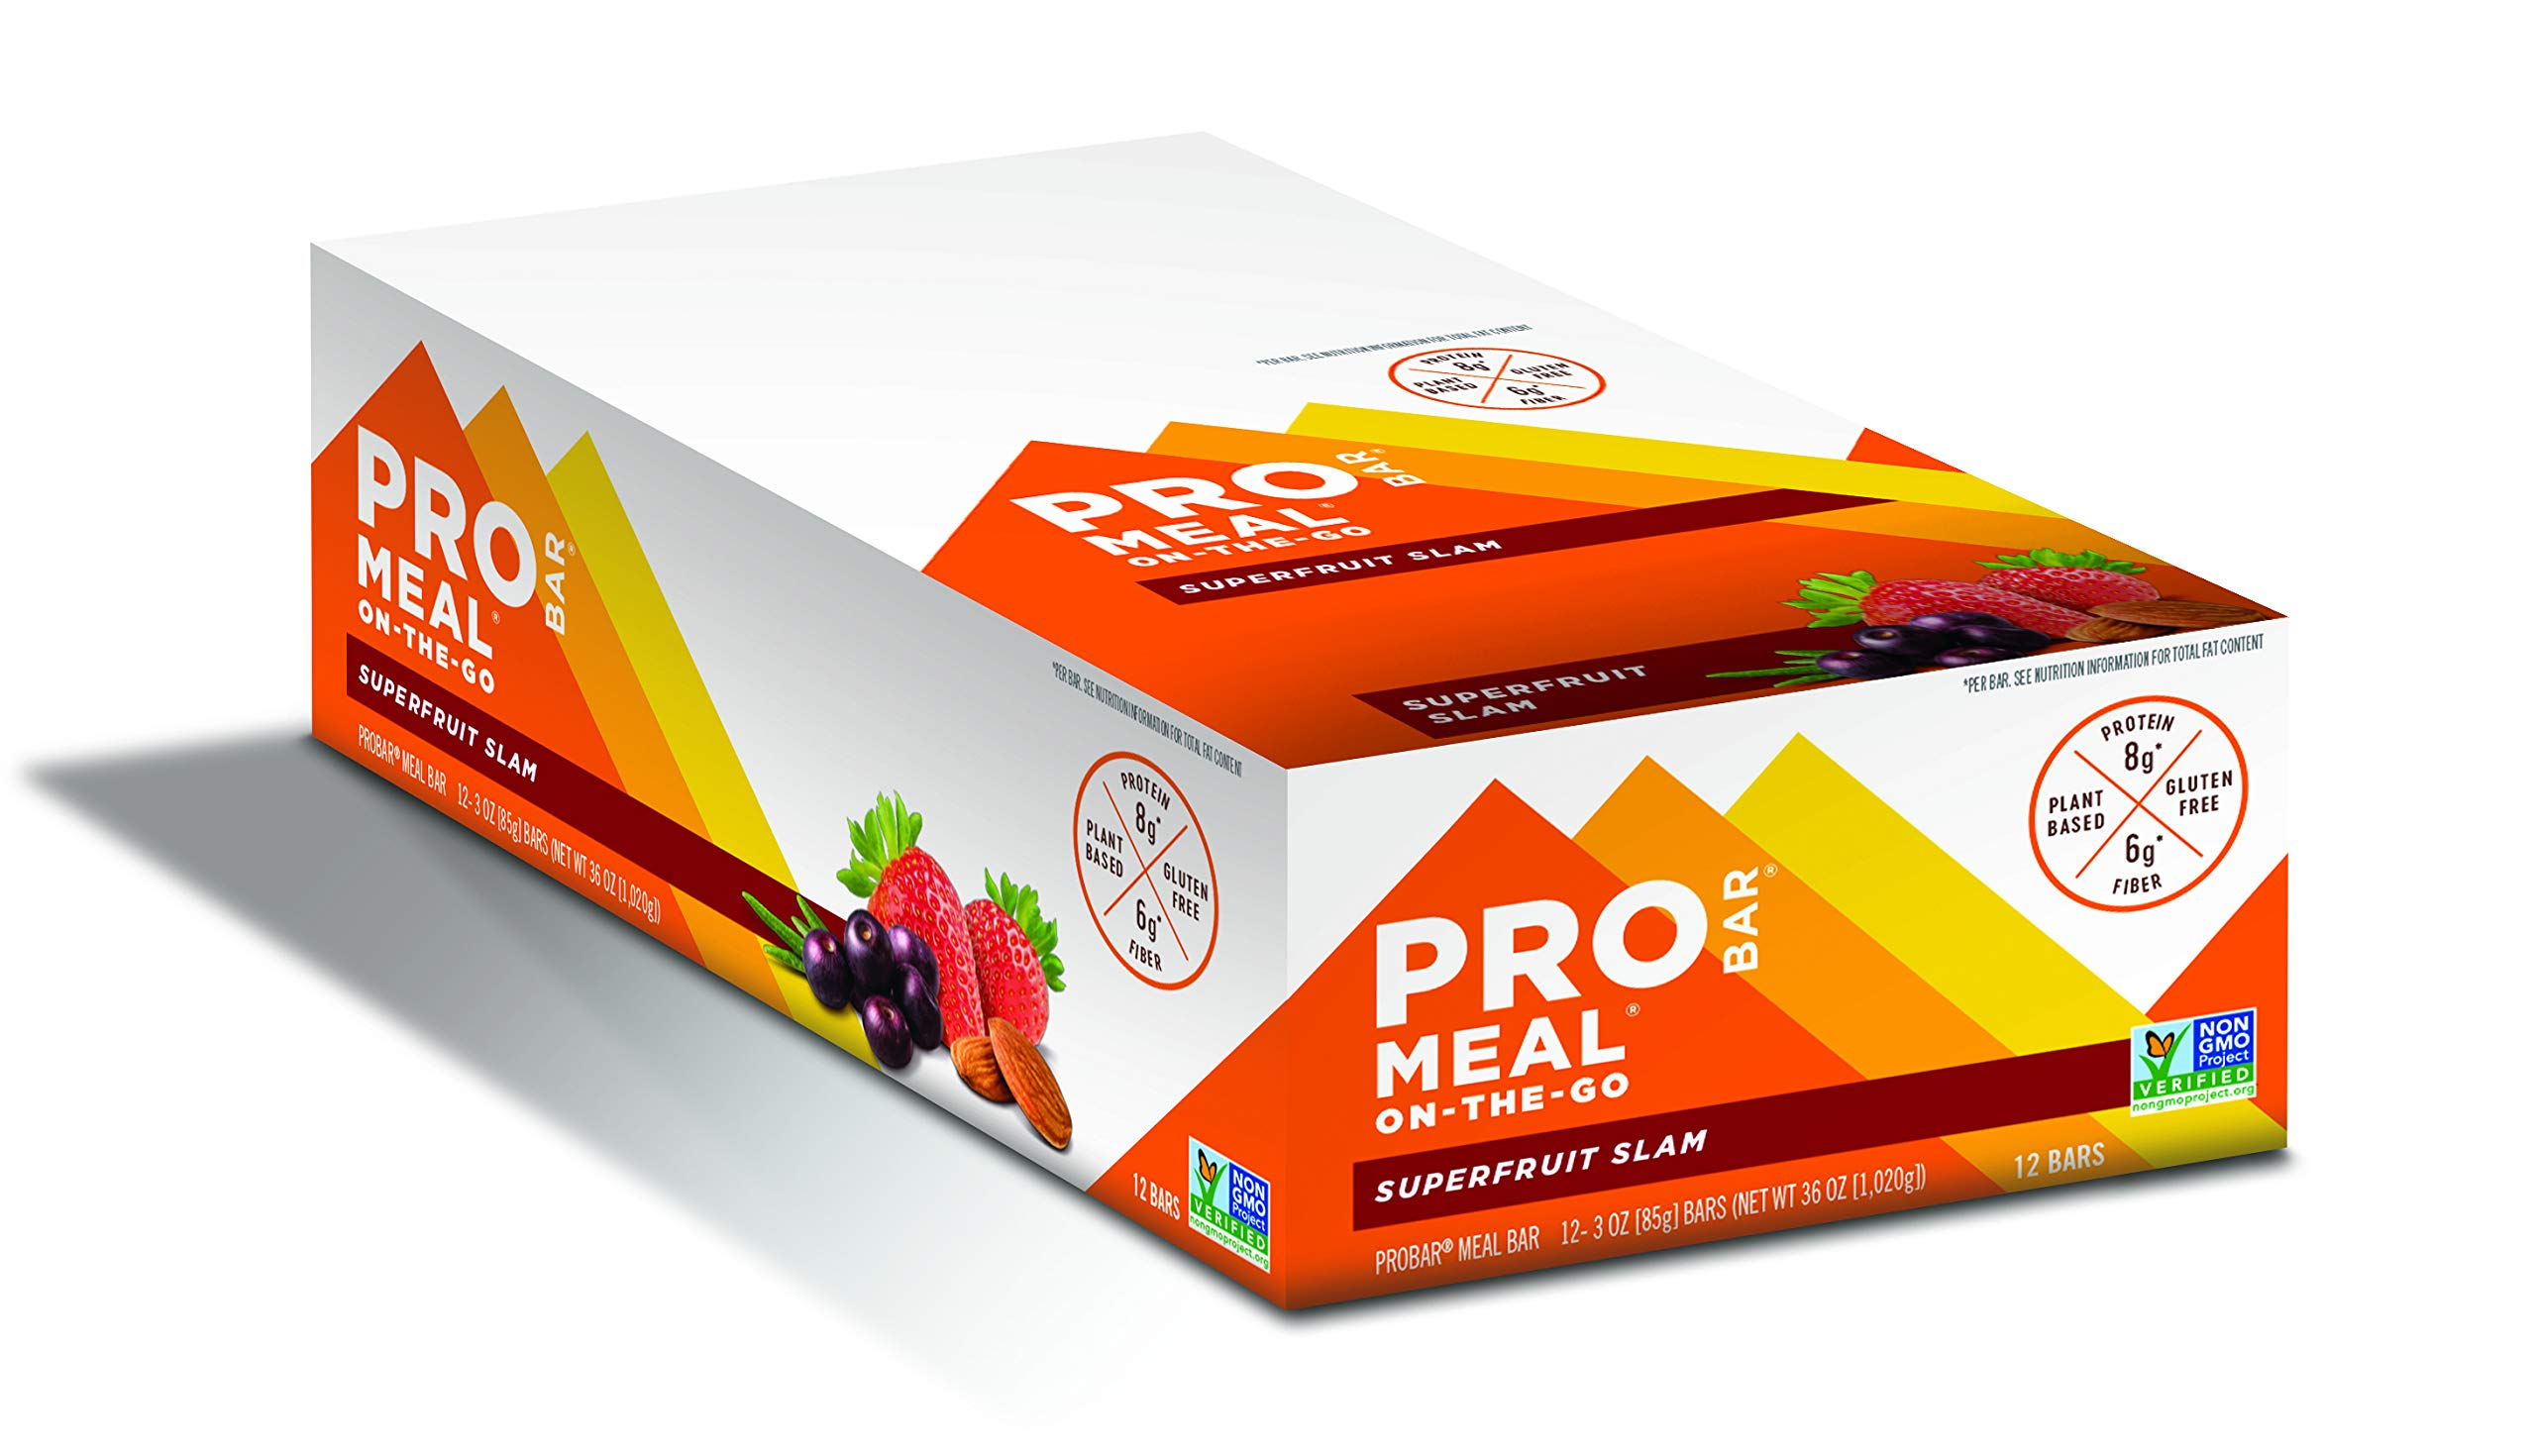 PROBAR - Meal Bar, Superfruit Slam, Non-GMO, Gluten-Free, Certified Organic, Healthy, Plant-Based Whole Food Ingredients, Natural Energy (12 Count)